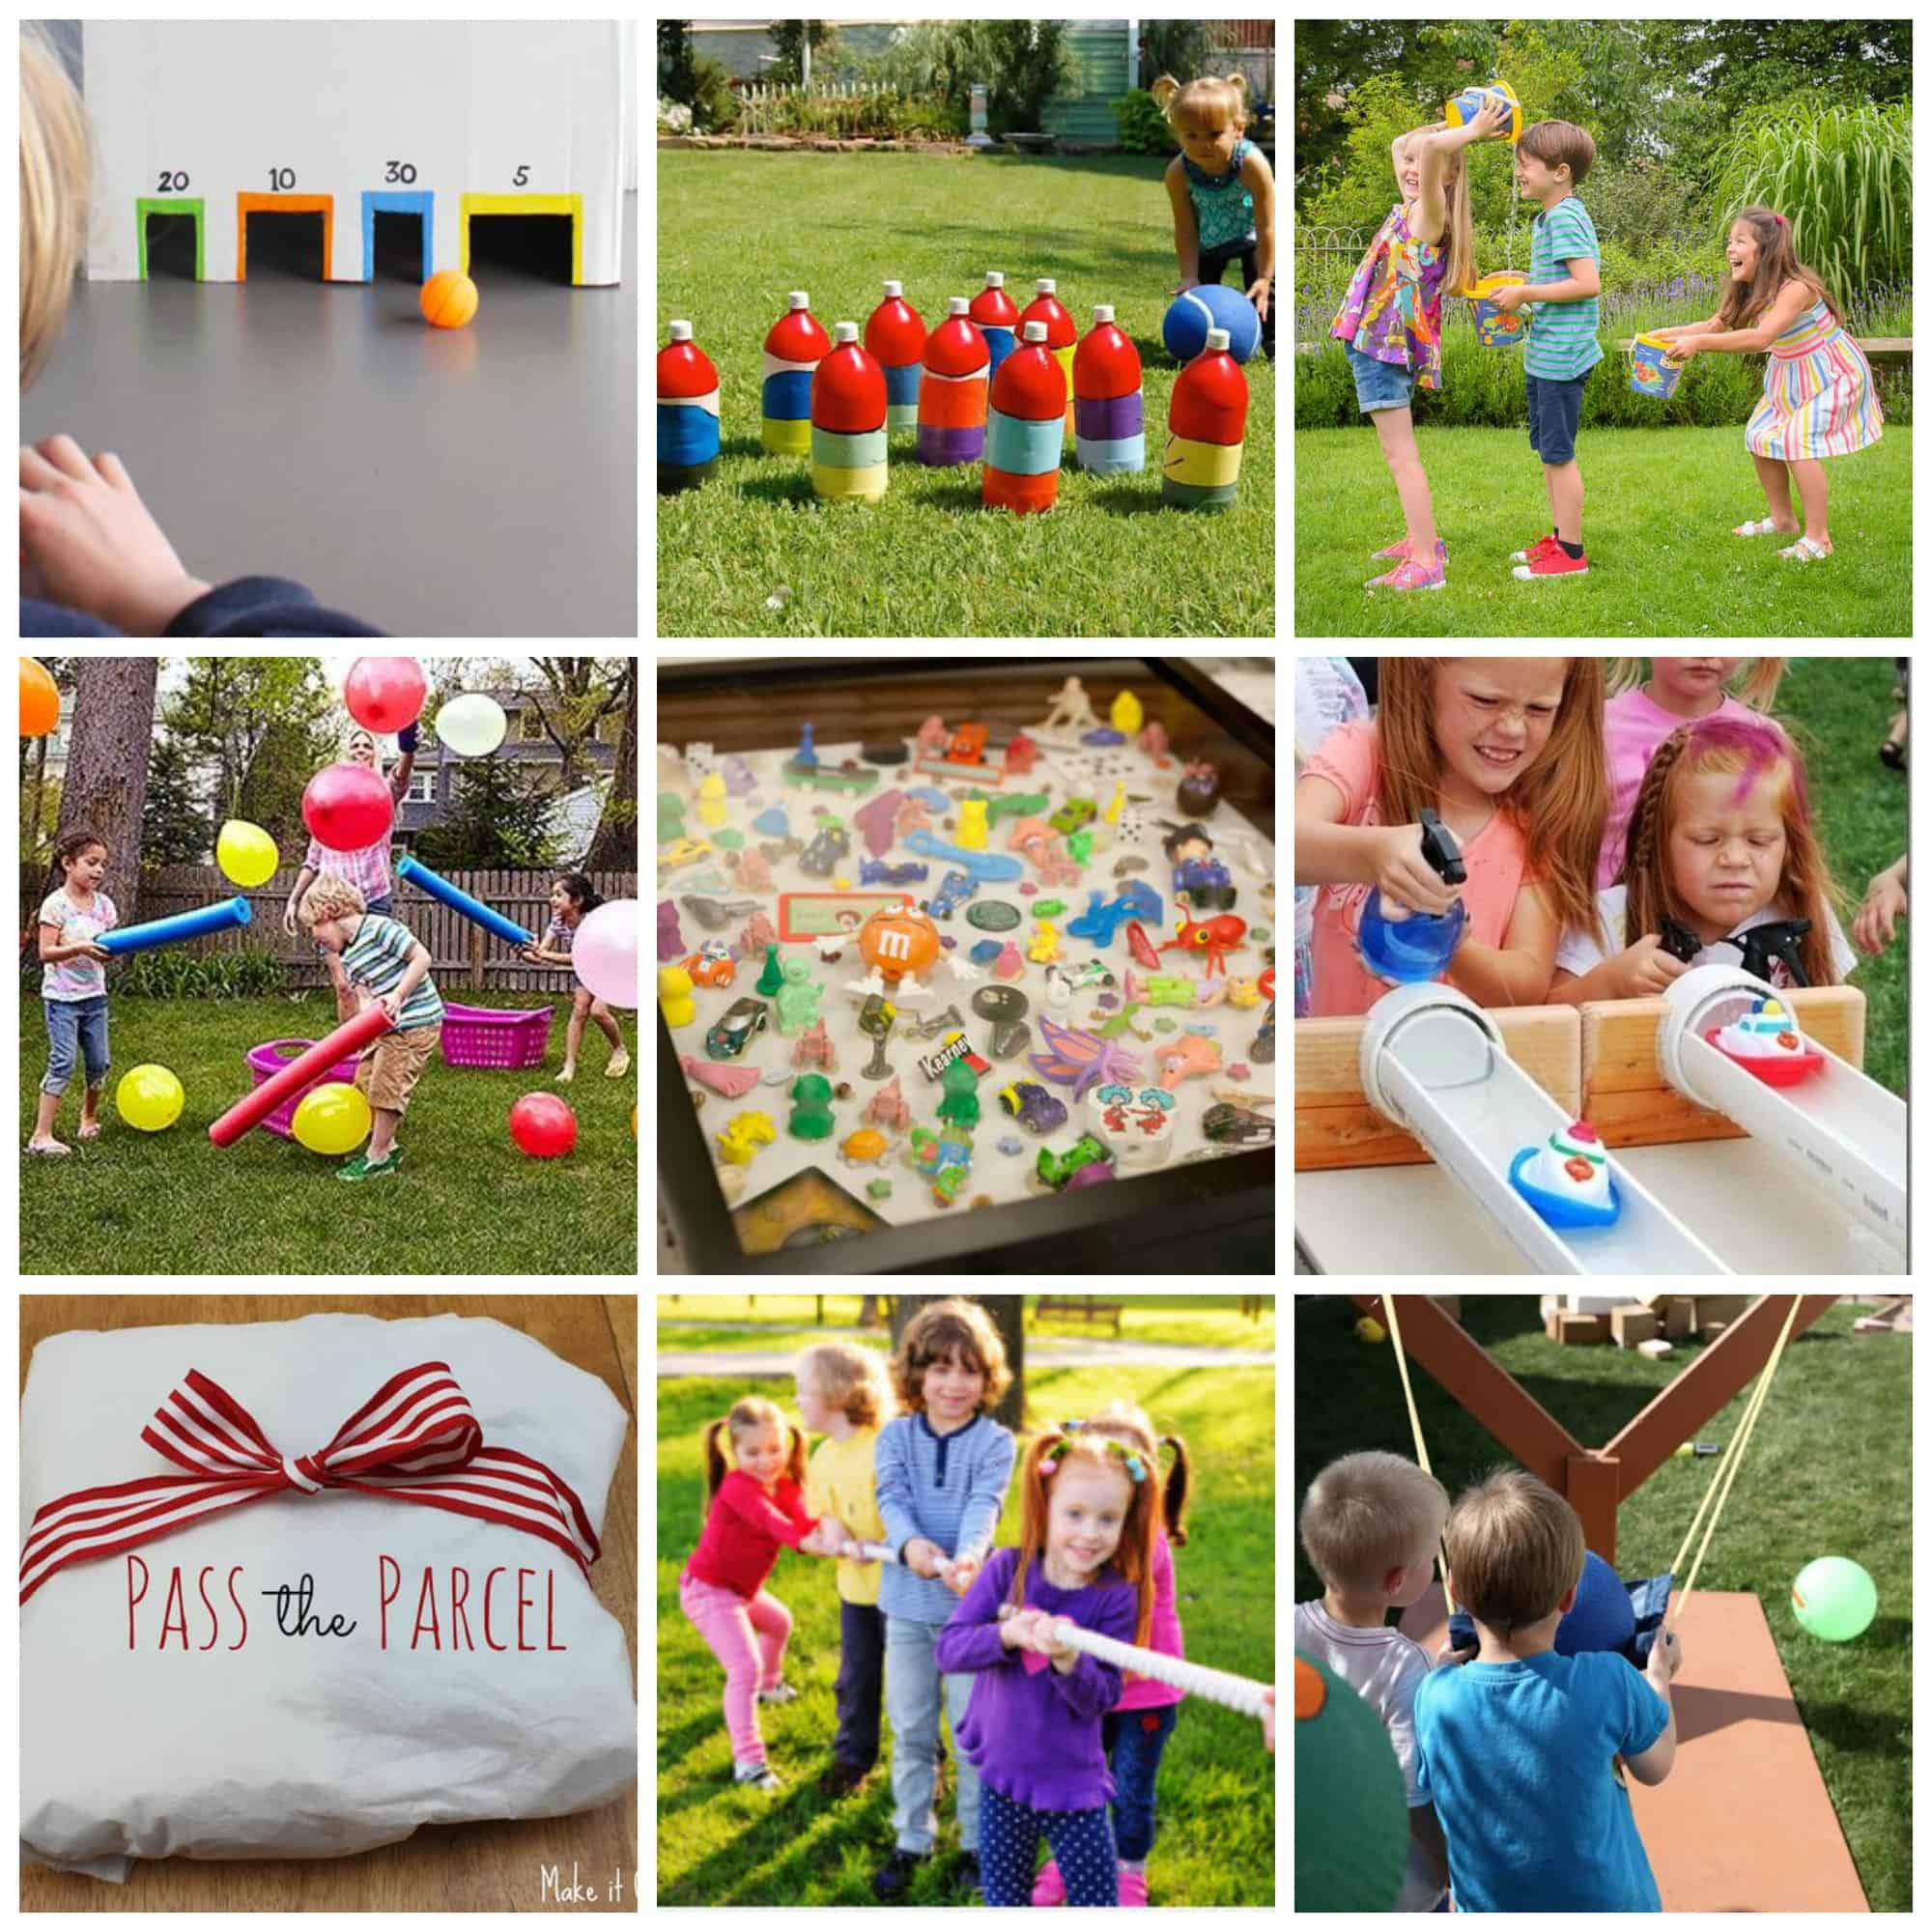 10 Fun Party Games for Kids Under 5